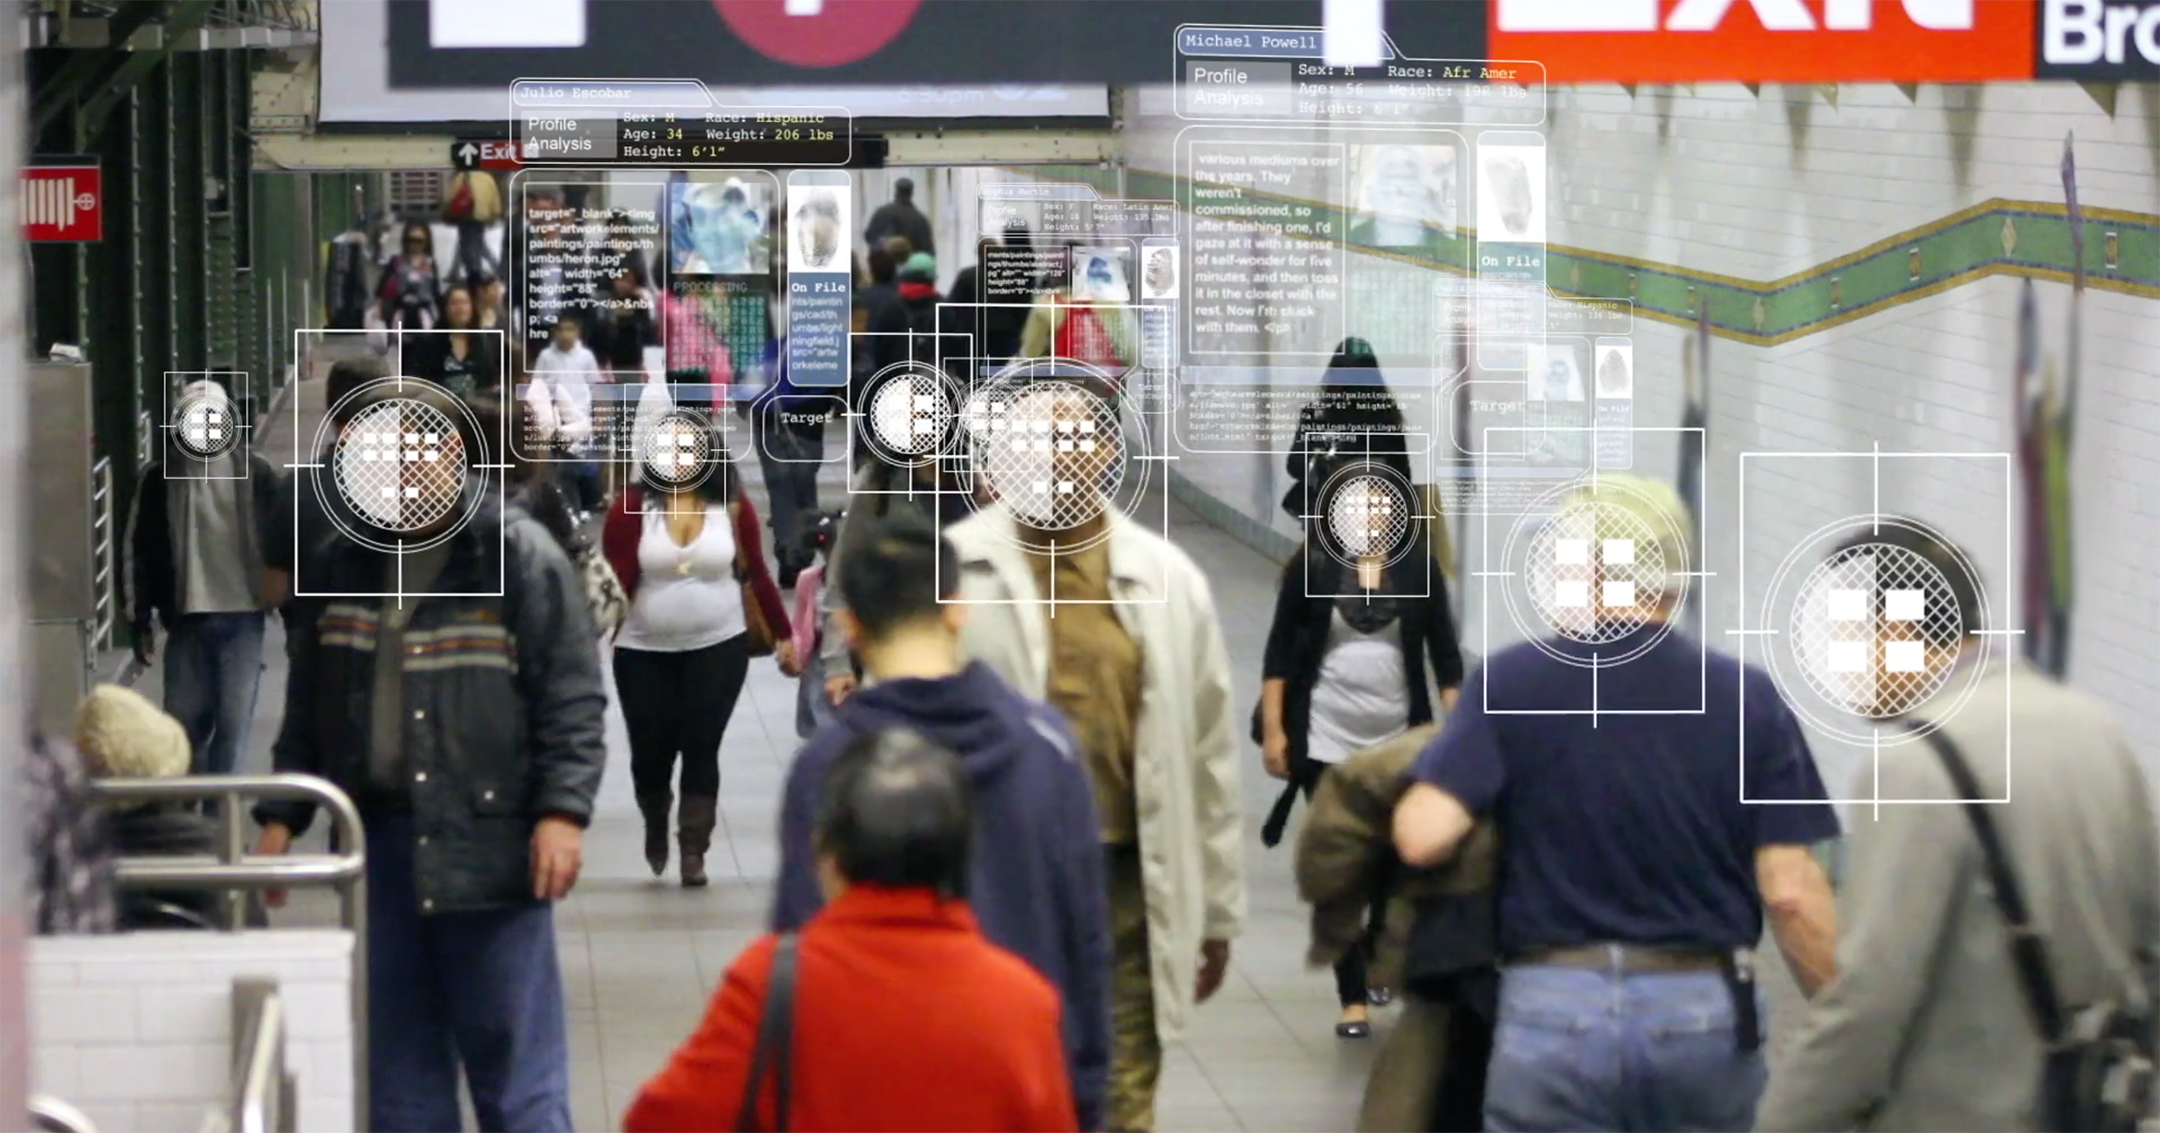 An image showing people walking through a New York City subway station with graphic elements representing data collection overlaid on top of them